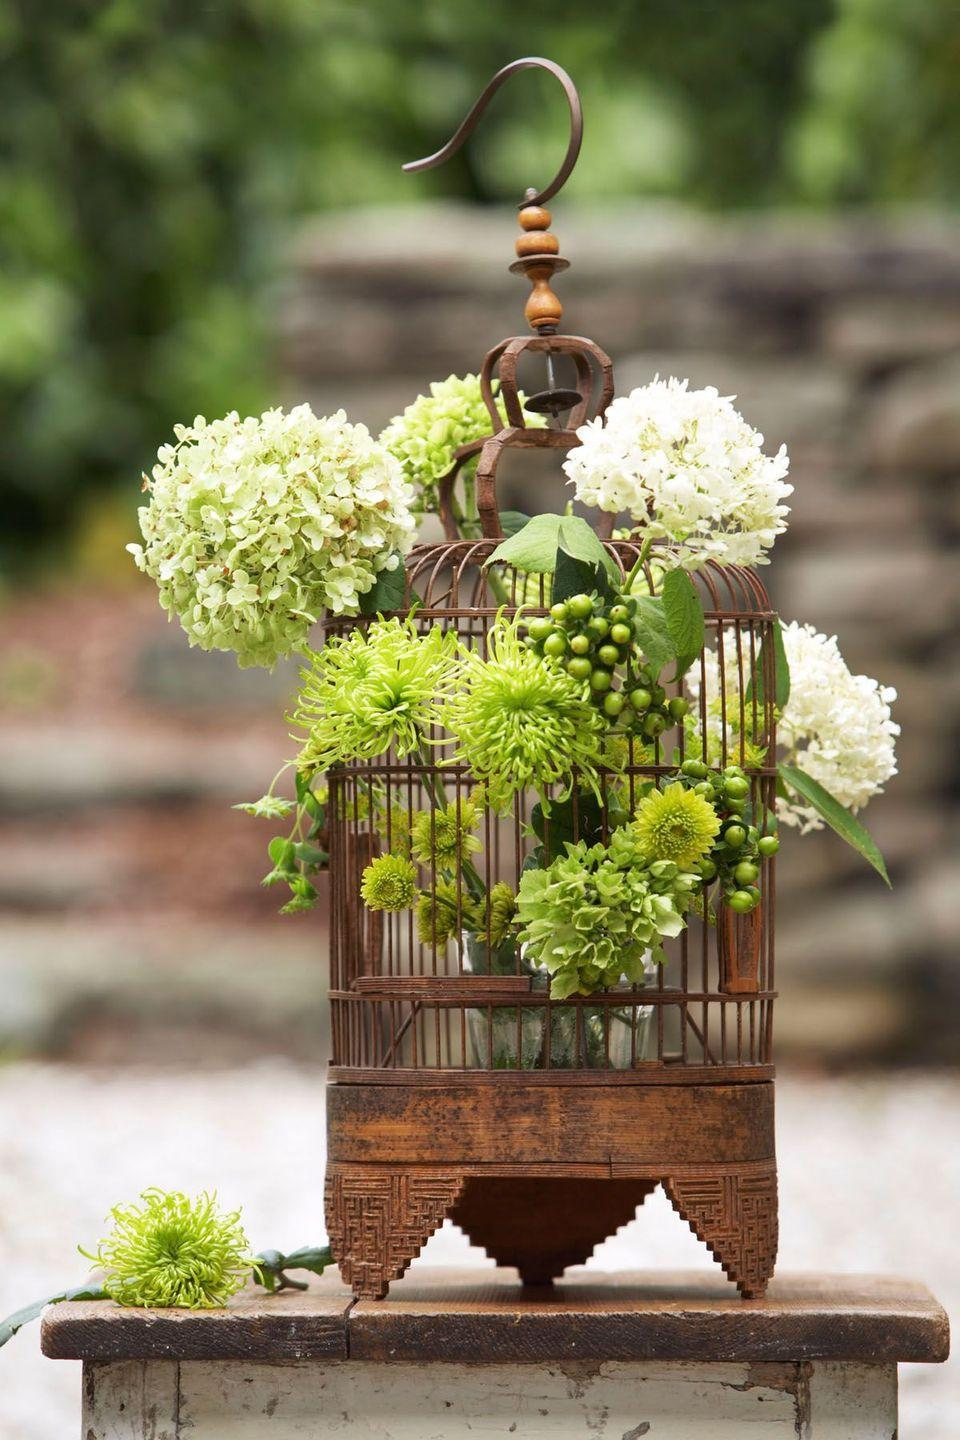 <p>A vintage-inspired birdcage makes an ideal display for top-heavy foliage like hydrangeas and hypericum berries. Find your own vintage aviary at a flea market or tag sale, remove its perch, and pop a small vase inside. Then slip a variety of blooms between the bars.</p>